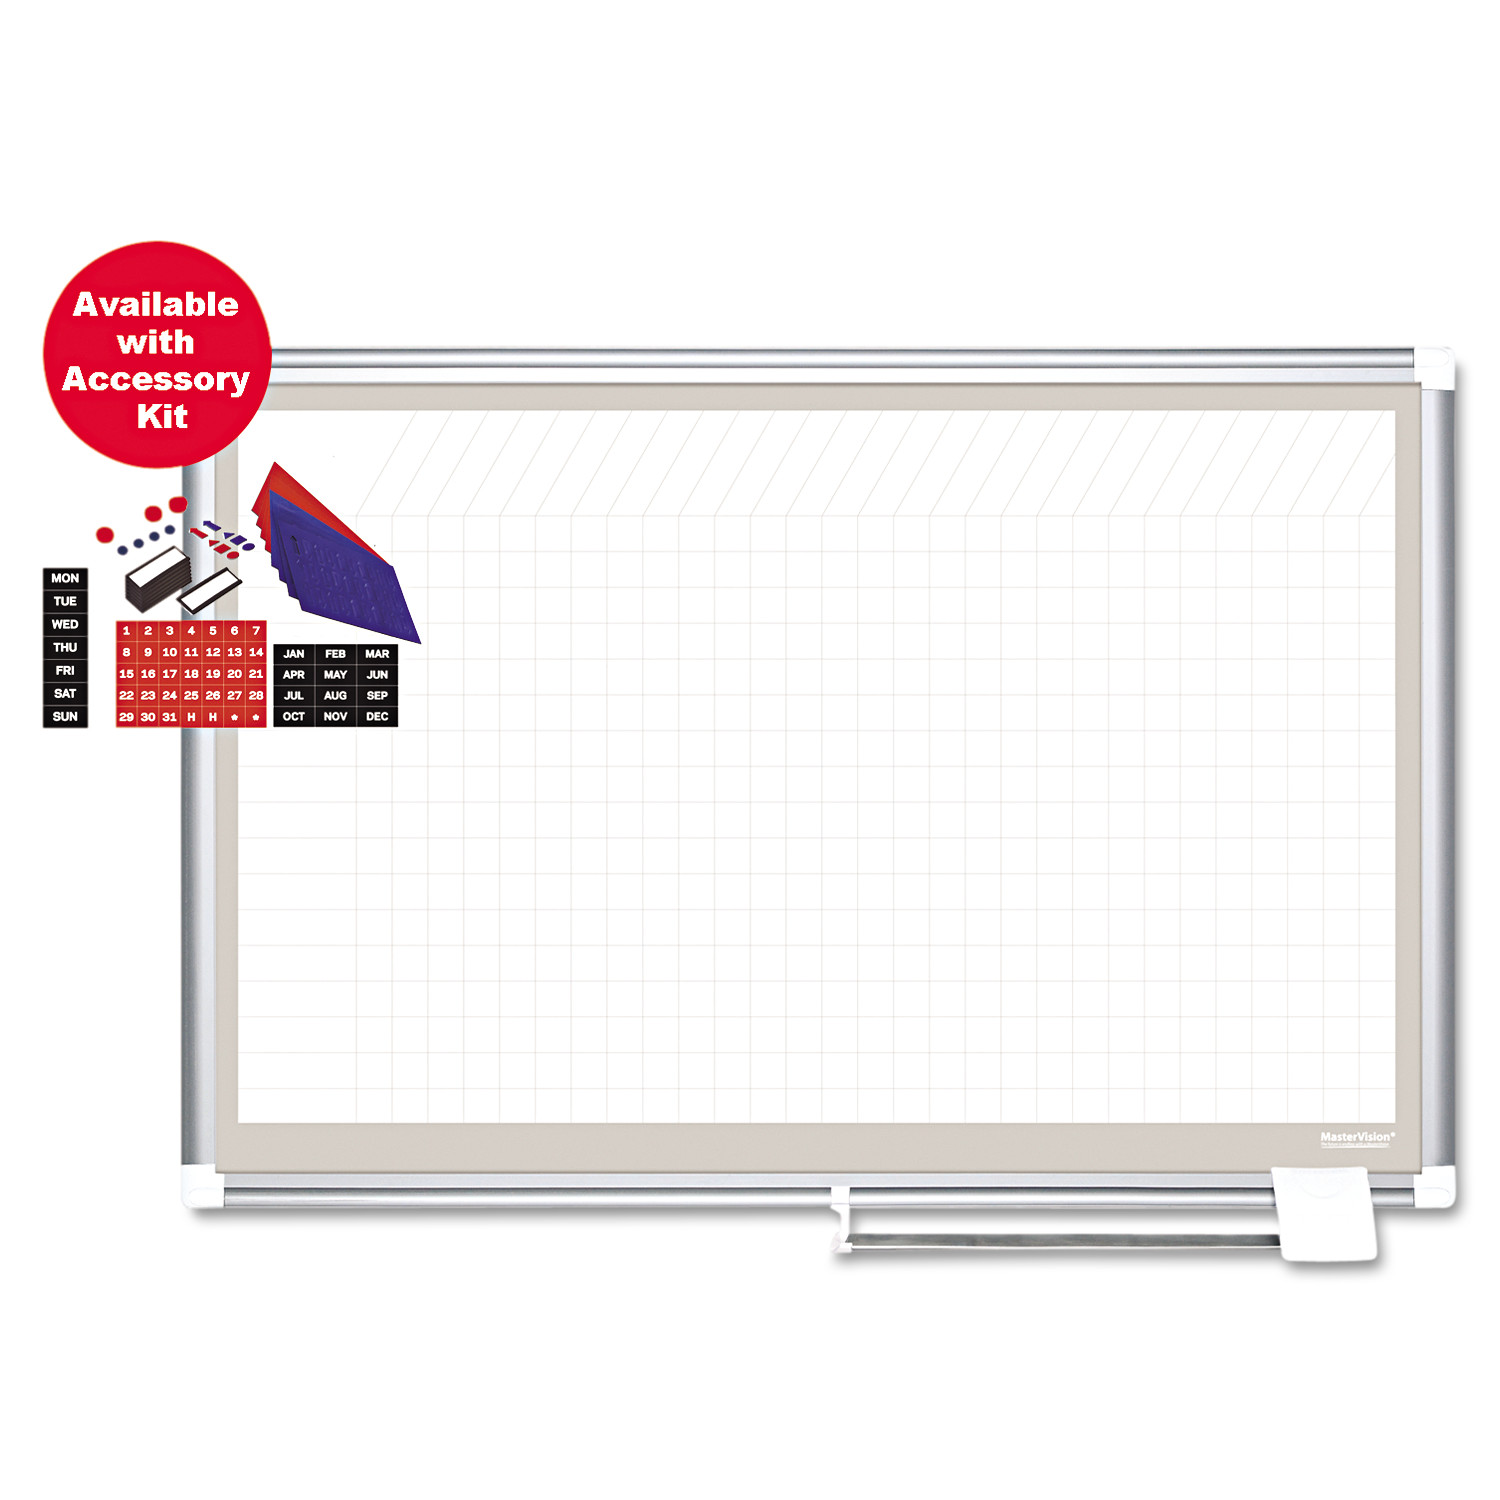 MasterVision All Purpose Porcelain Dry Erase Planning Board, 1x2 Grid, 48x36, Aluminum Frame by BI-SILQUE VISUAL COMMUNICATION PRODUCTS INC